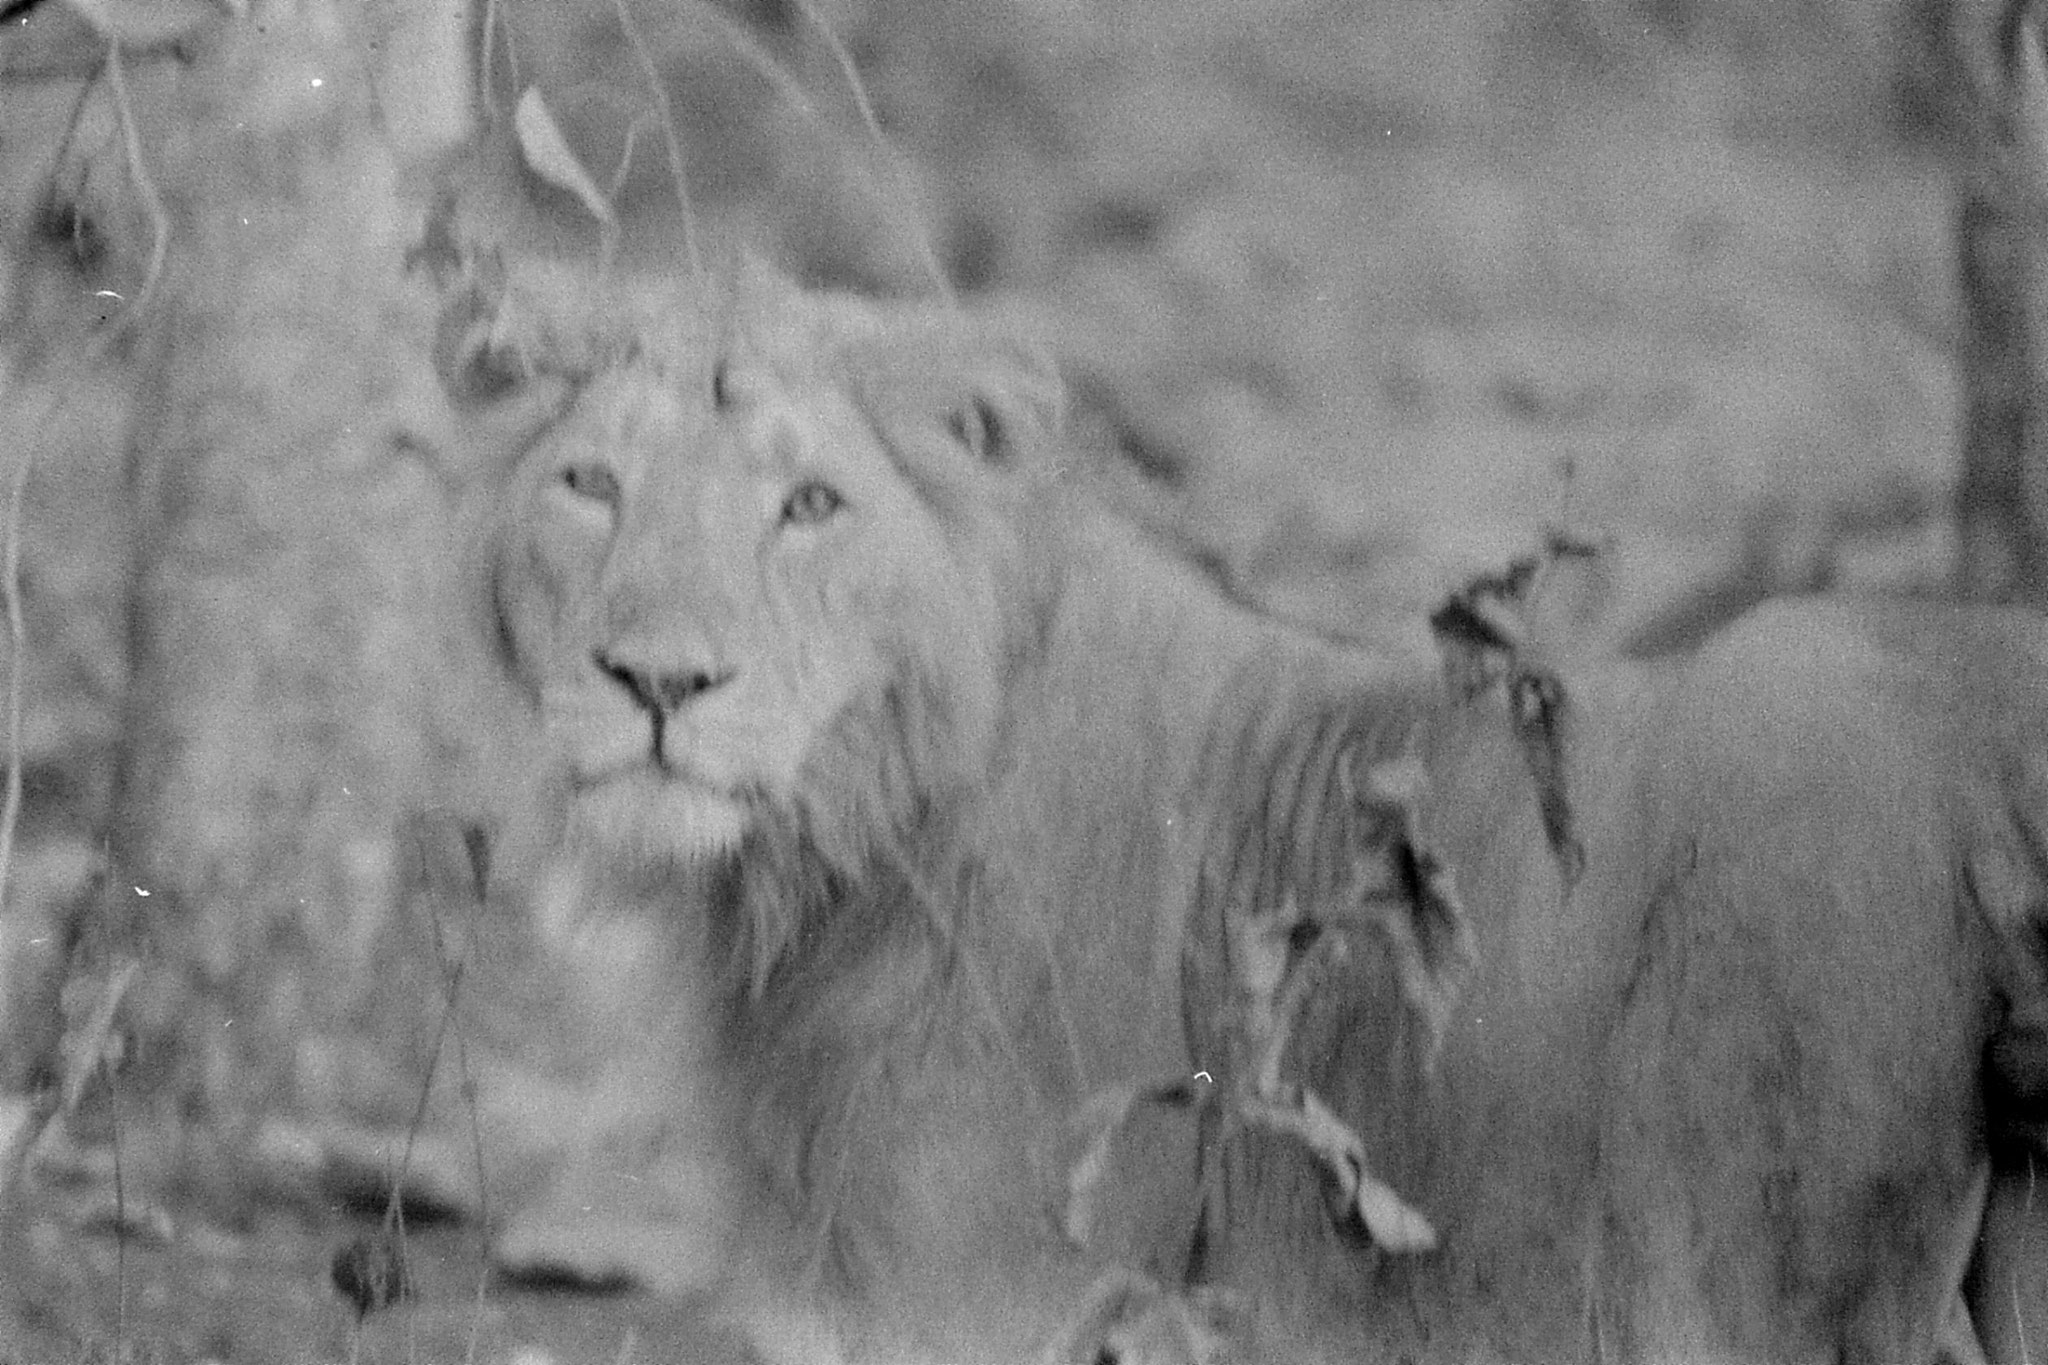 13/12/89: 6: Lions early morning